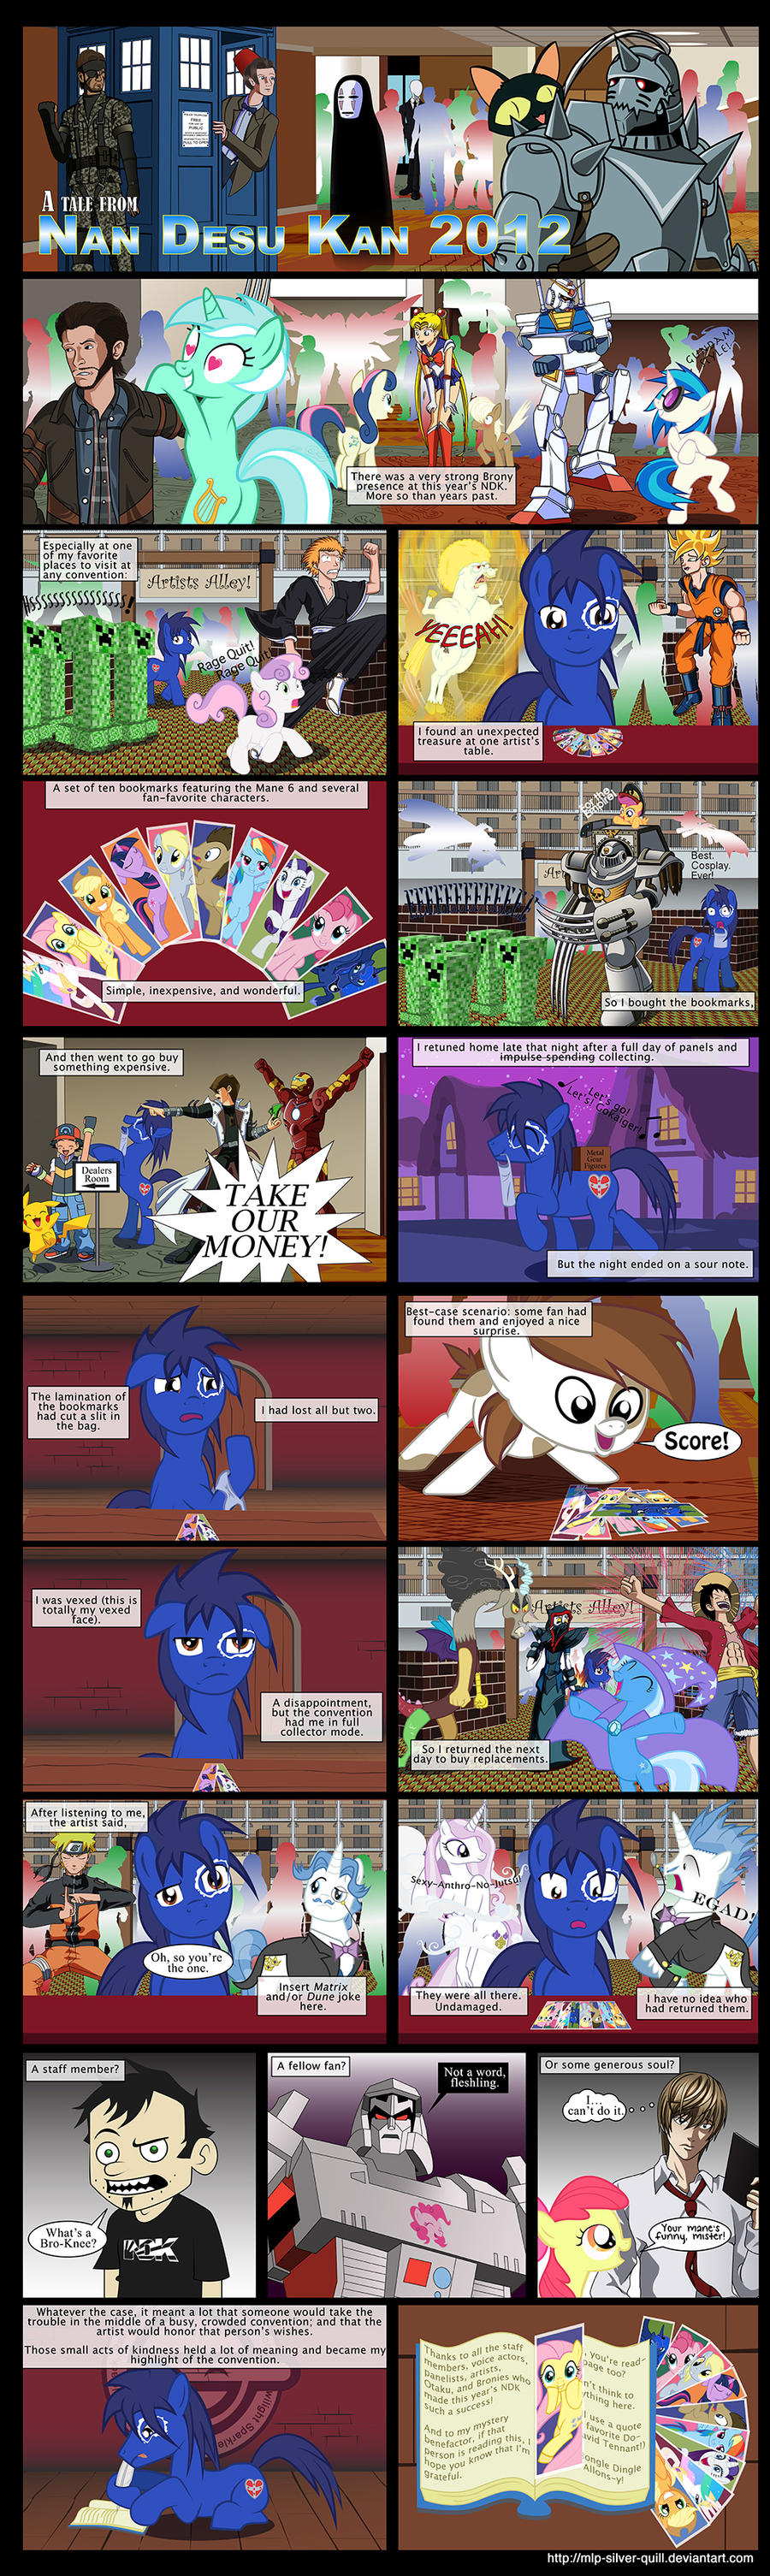 A Tale from NDK by MLP-Silver-Quill